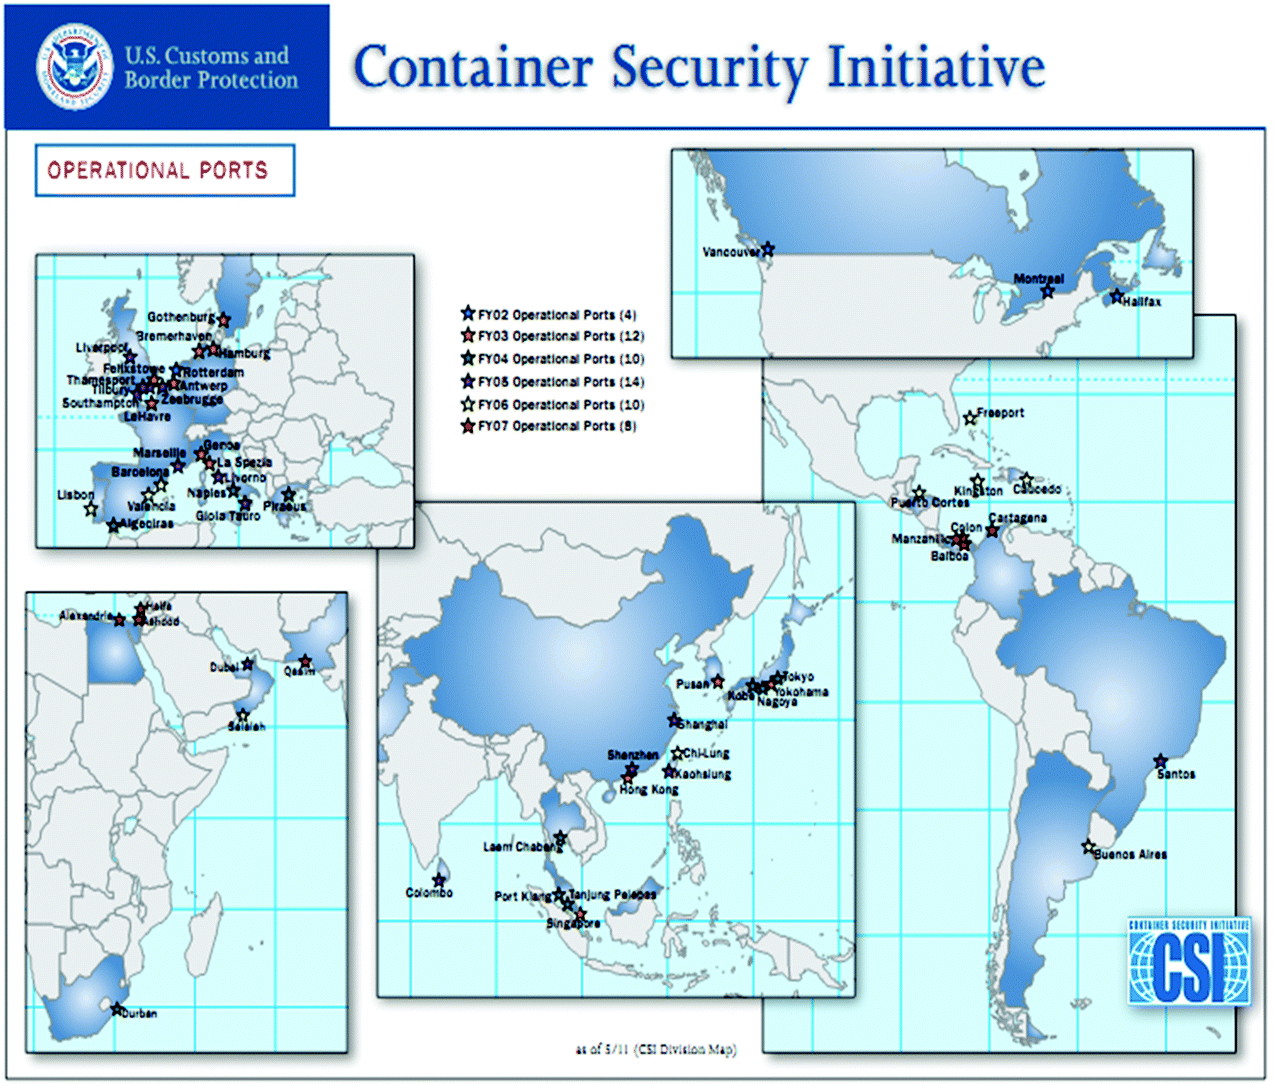 Maritime Security Measures and the Container Security Initiative